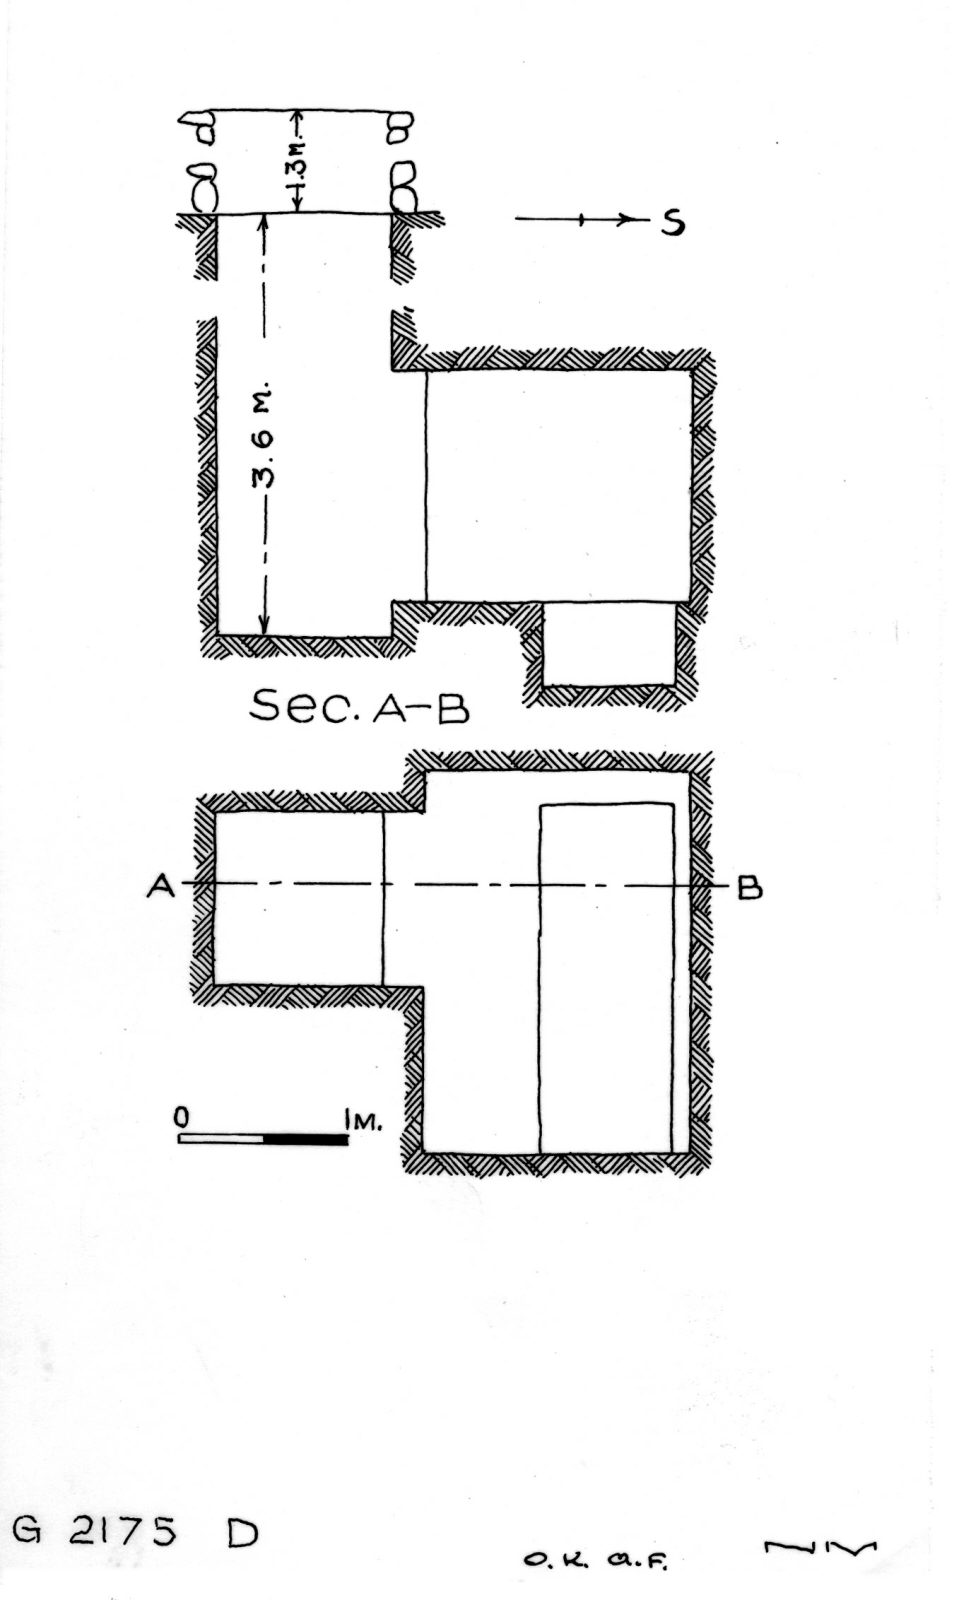 Maps and plans: G 2175, Shaft D